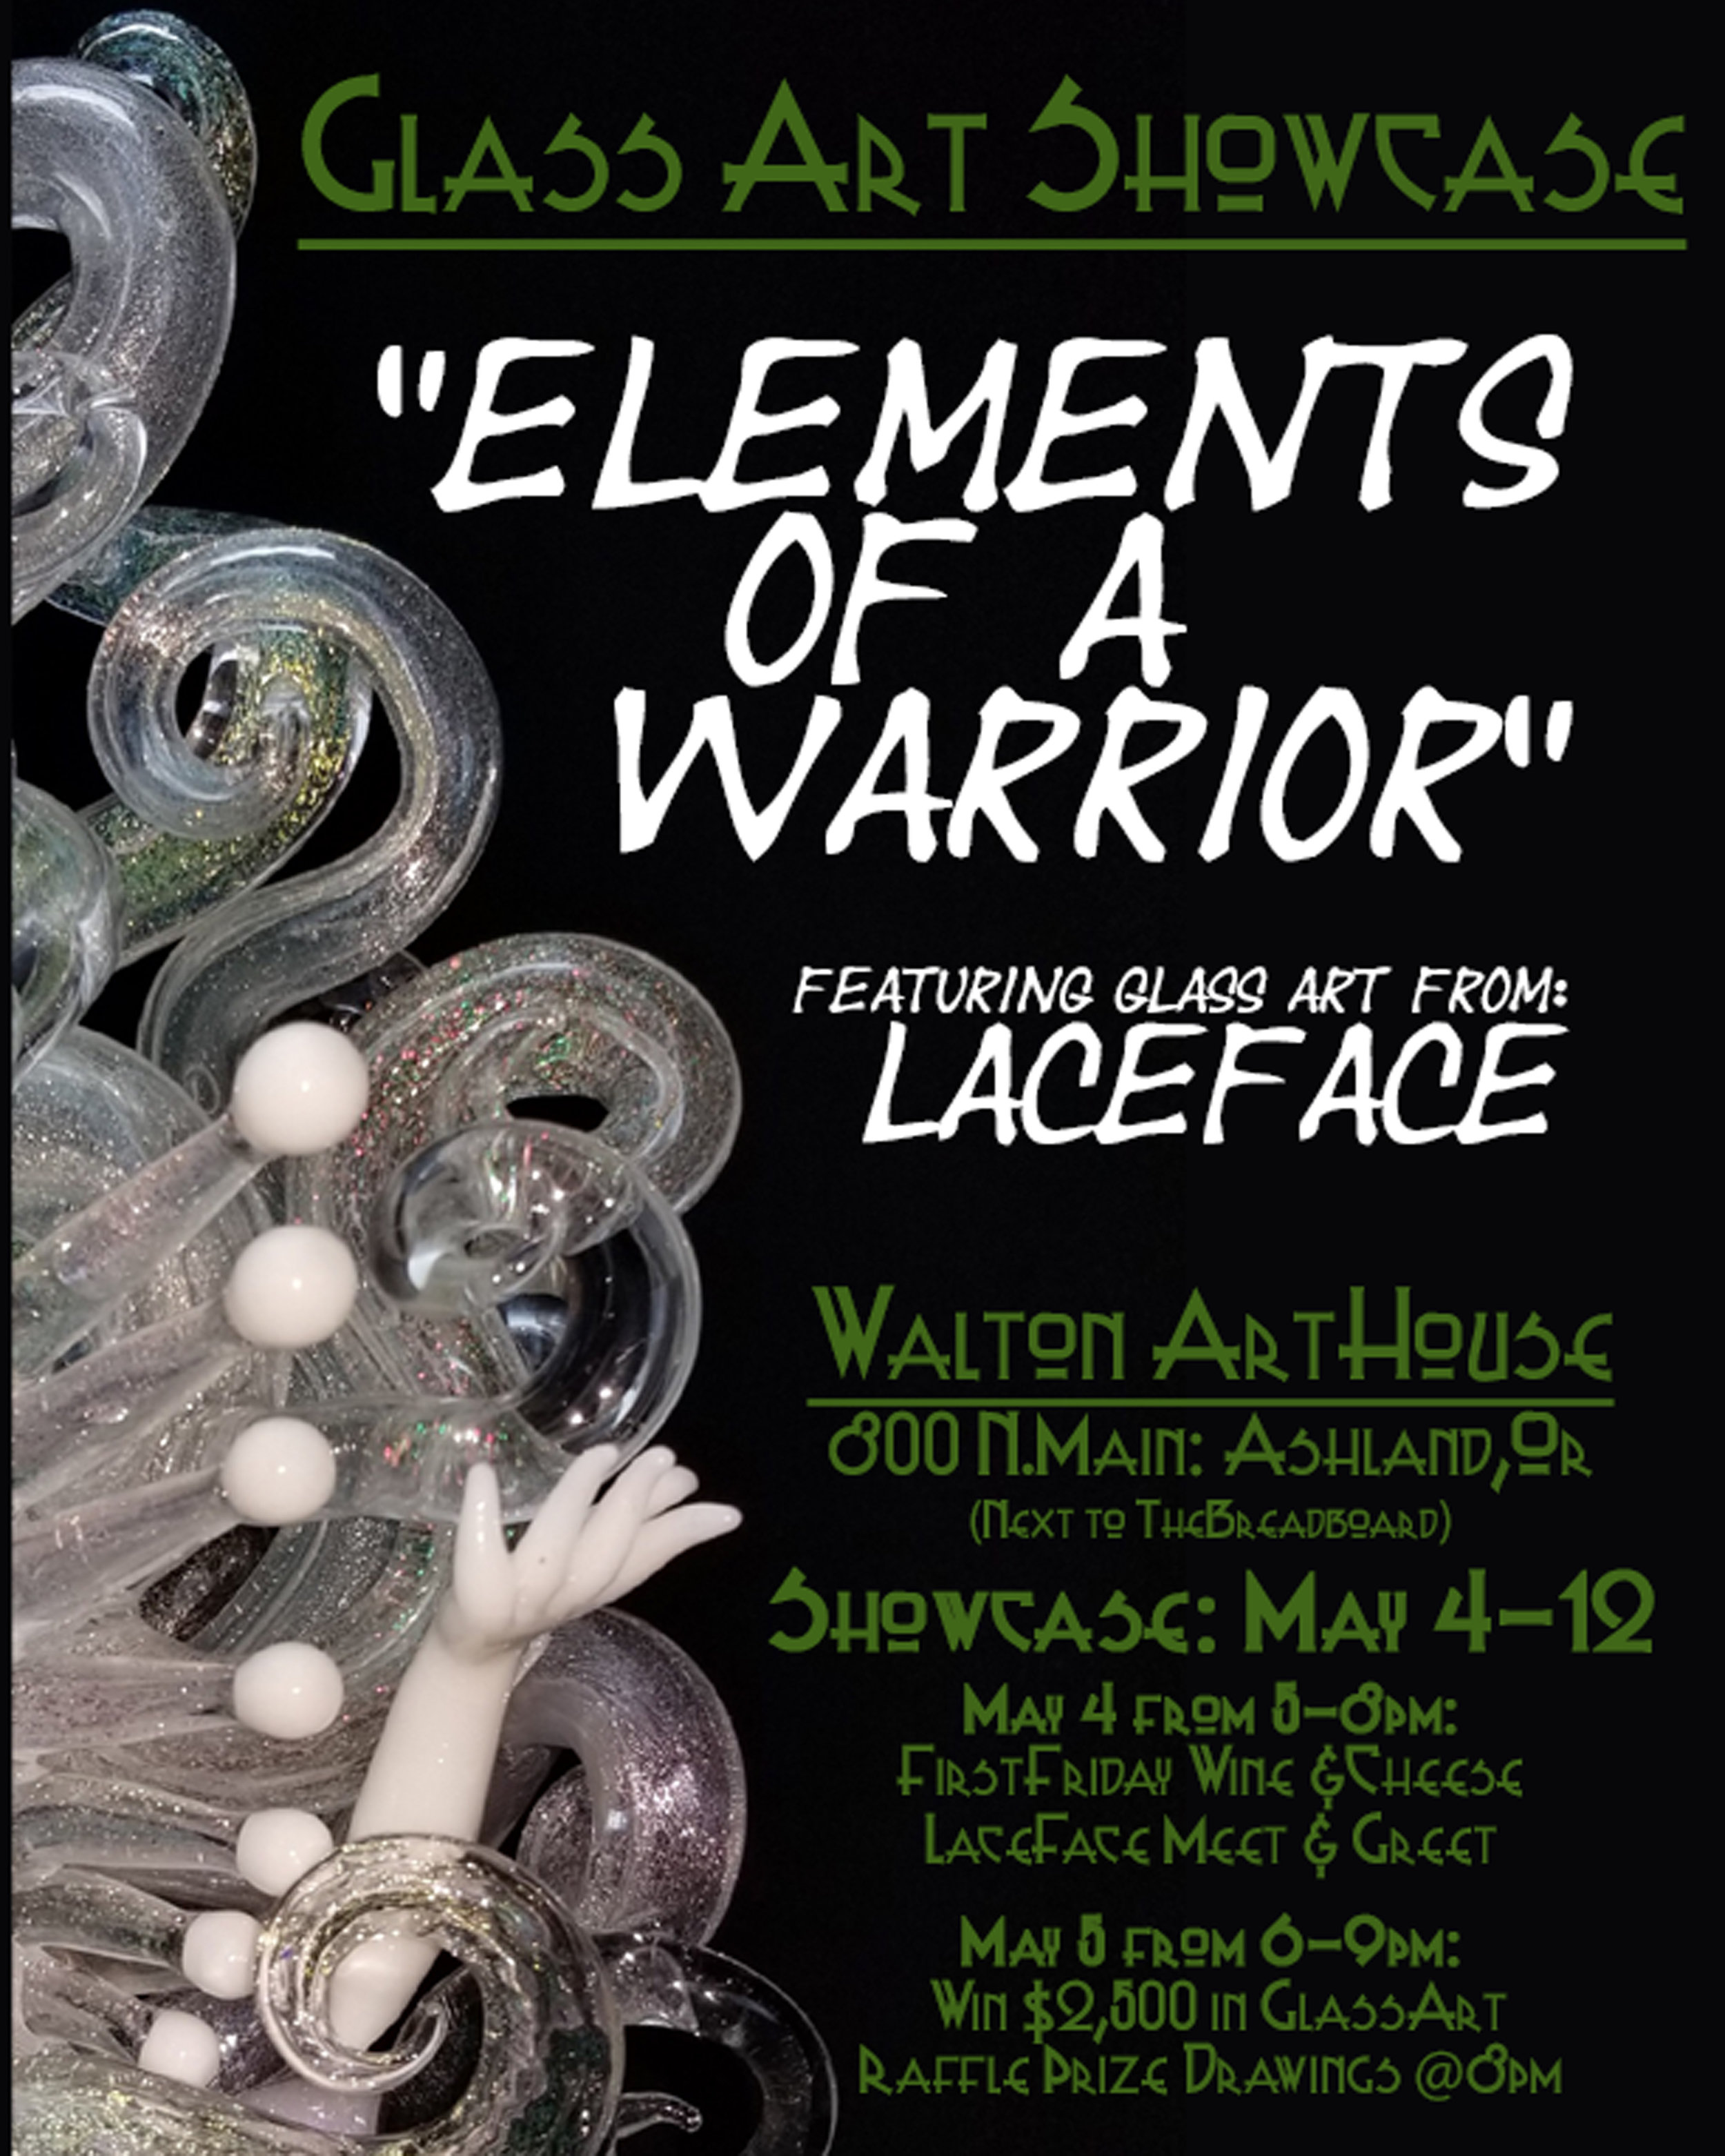 2017 & 2018 - DFO collaboration, Portland Or,  June 2018Elements of a warrior showcase at the Walton Art House Grand Opening May 2018Tribe 13